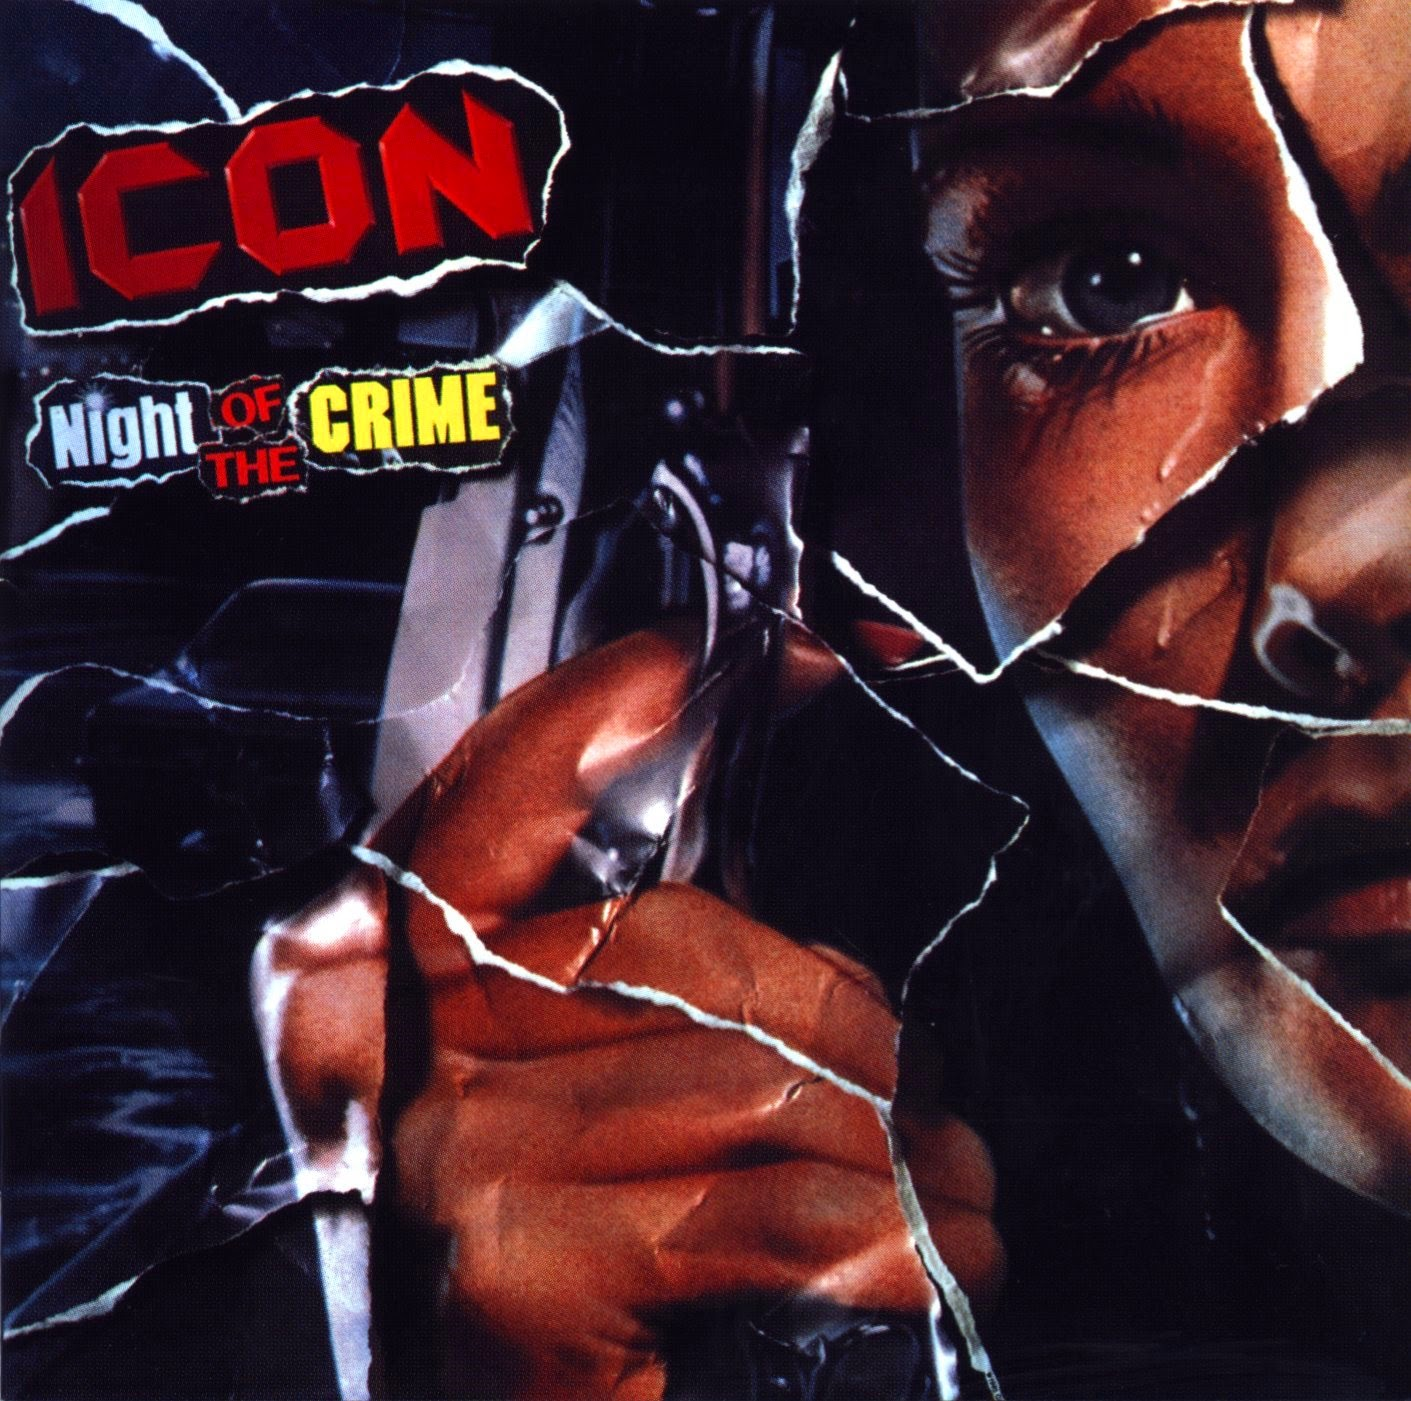 Icon Night of the crime 1985 aor melodic rock music blogspot albums